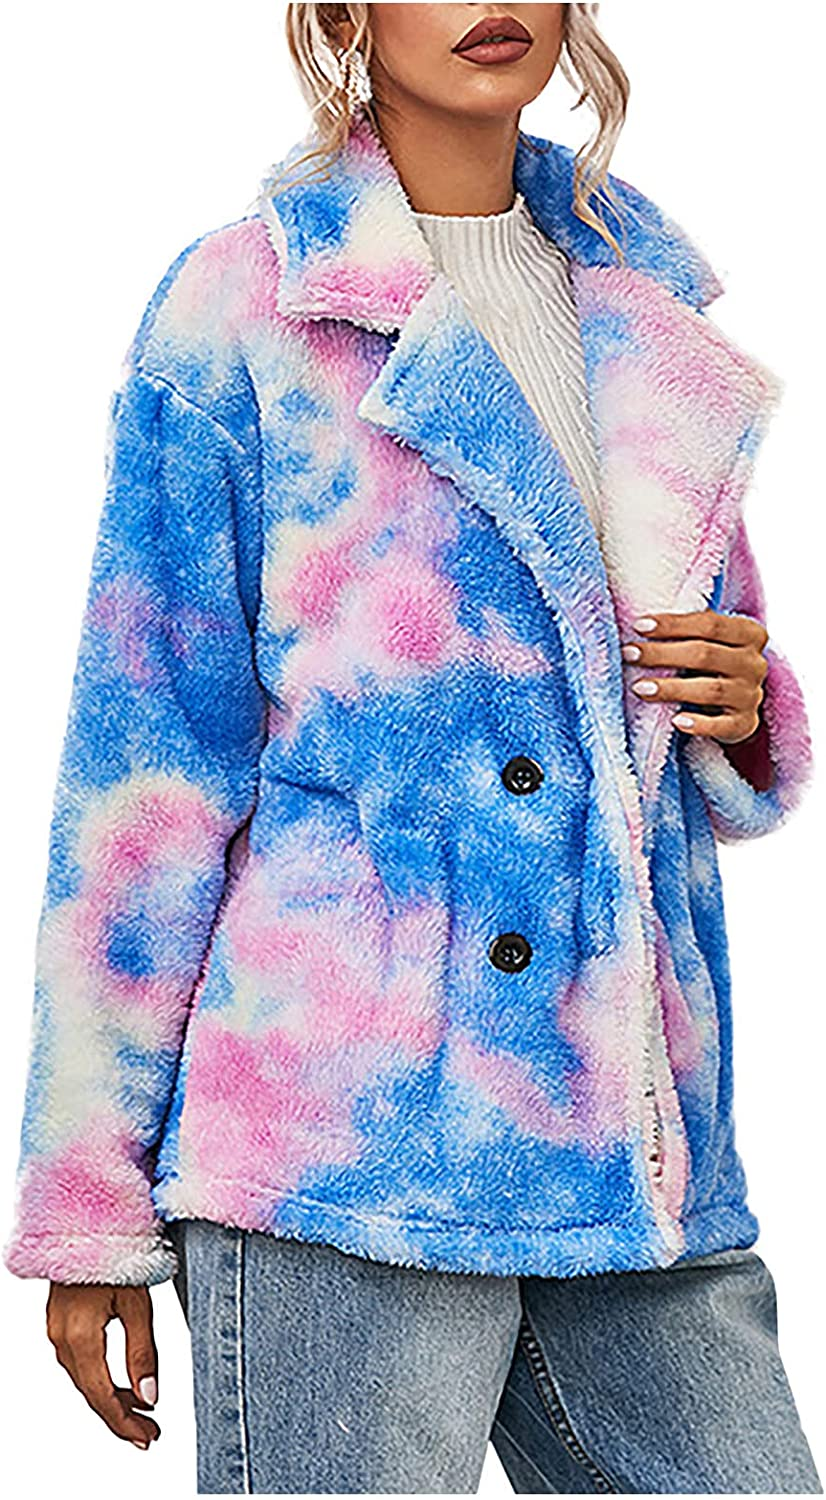 Women Winter Coat Tie-Dye Printed Double-Sided Plush Long-Sleeved Buttons Double-Breasted Lapel Padded Jacket Tops